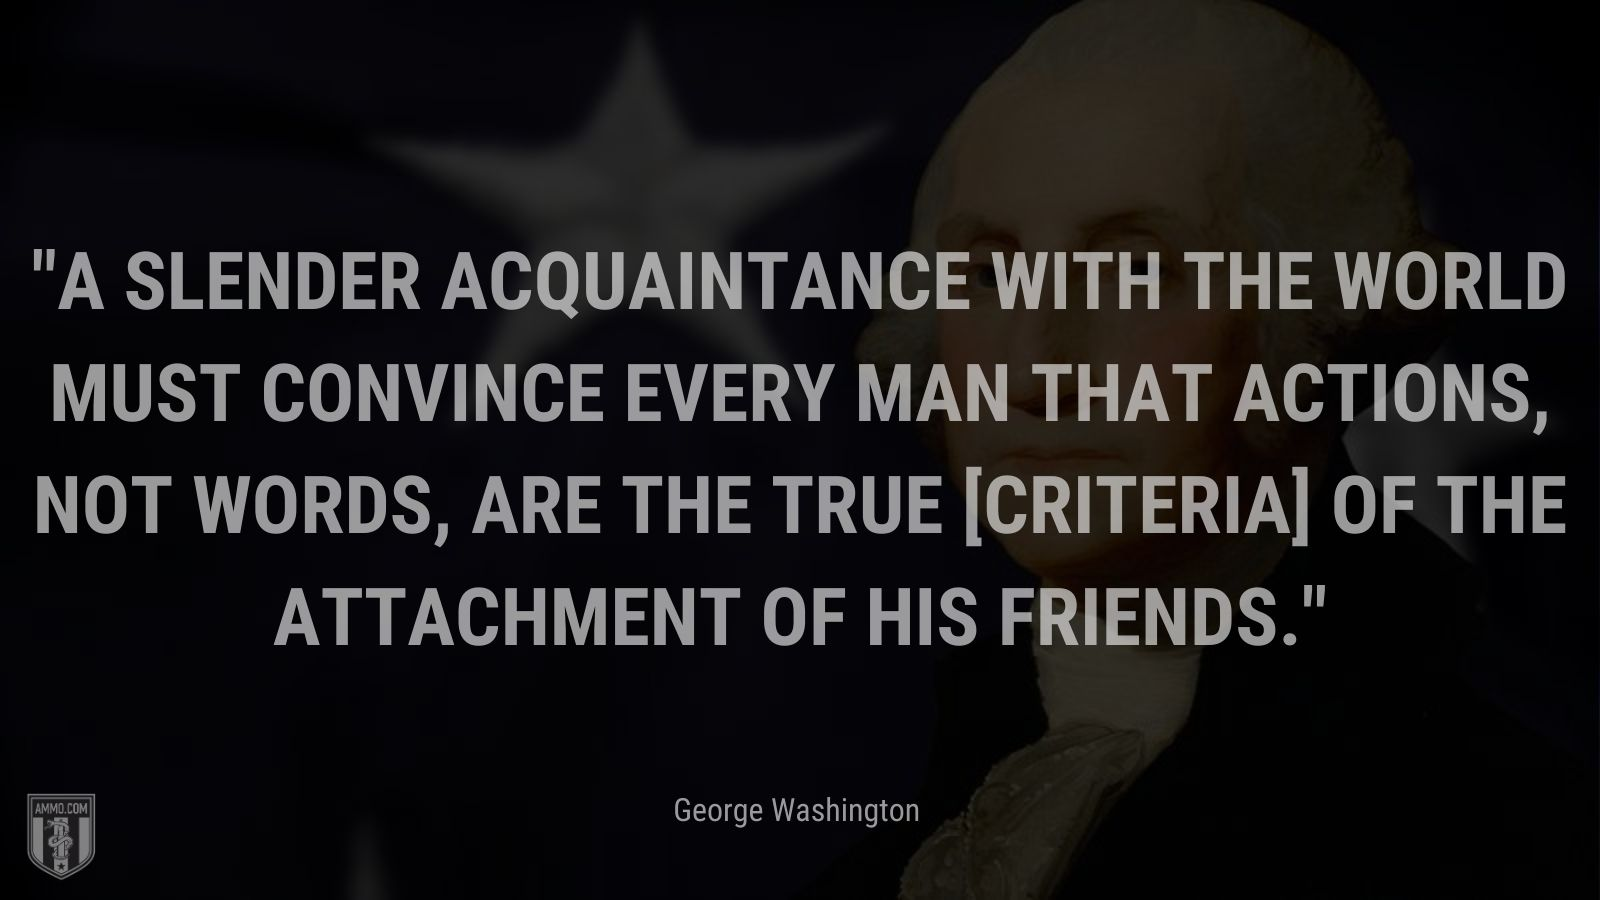 """""""A slender acquaintance with the world must convince every man that actions, not words, are the true [criteria] of the attachment of his friends."""" - George Washington"""